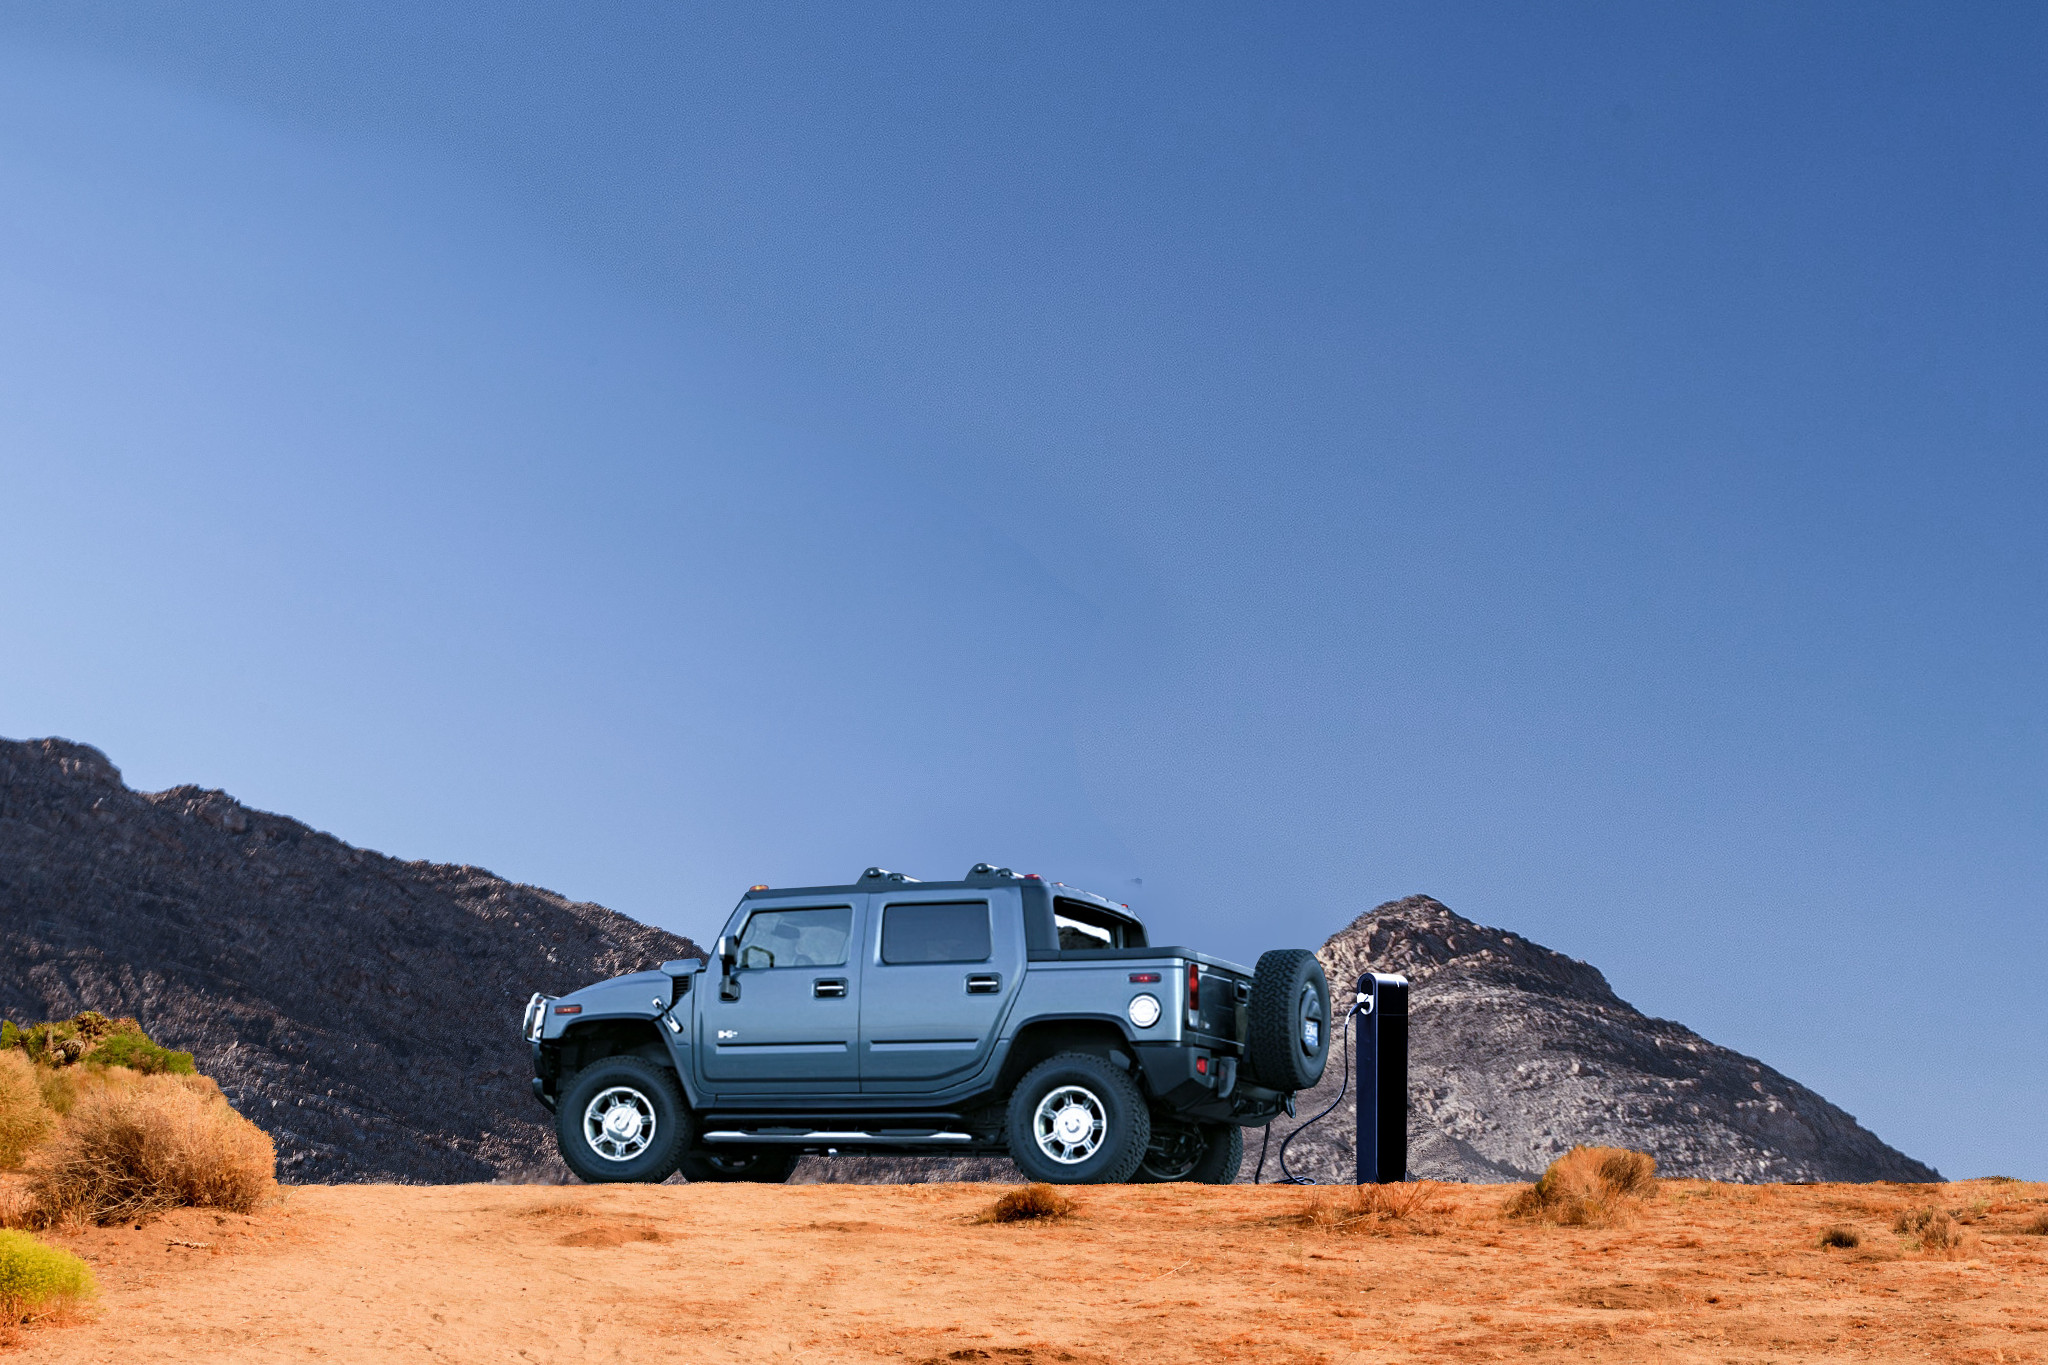 7 Things We Want to See in an Electric Hummer